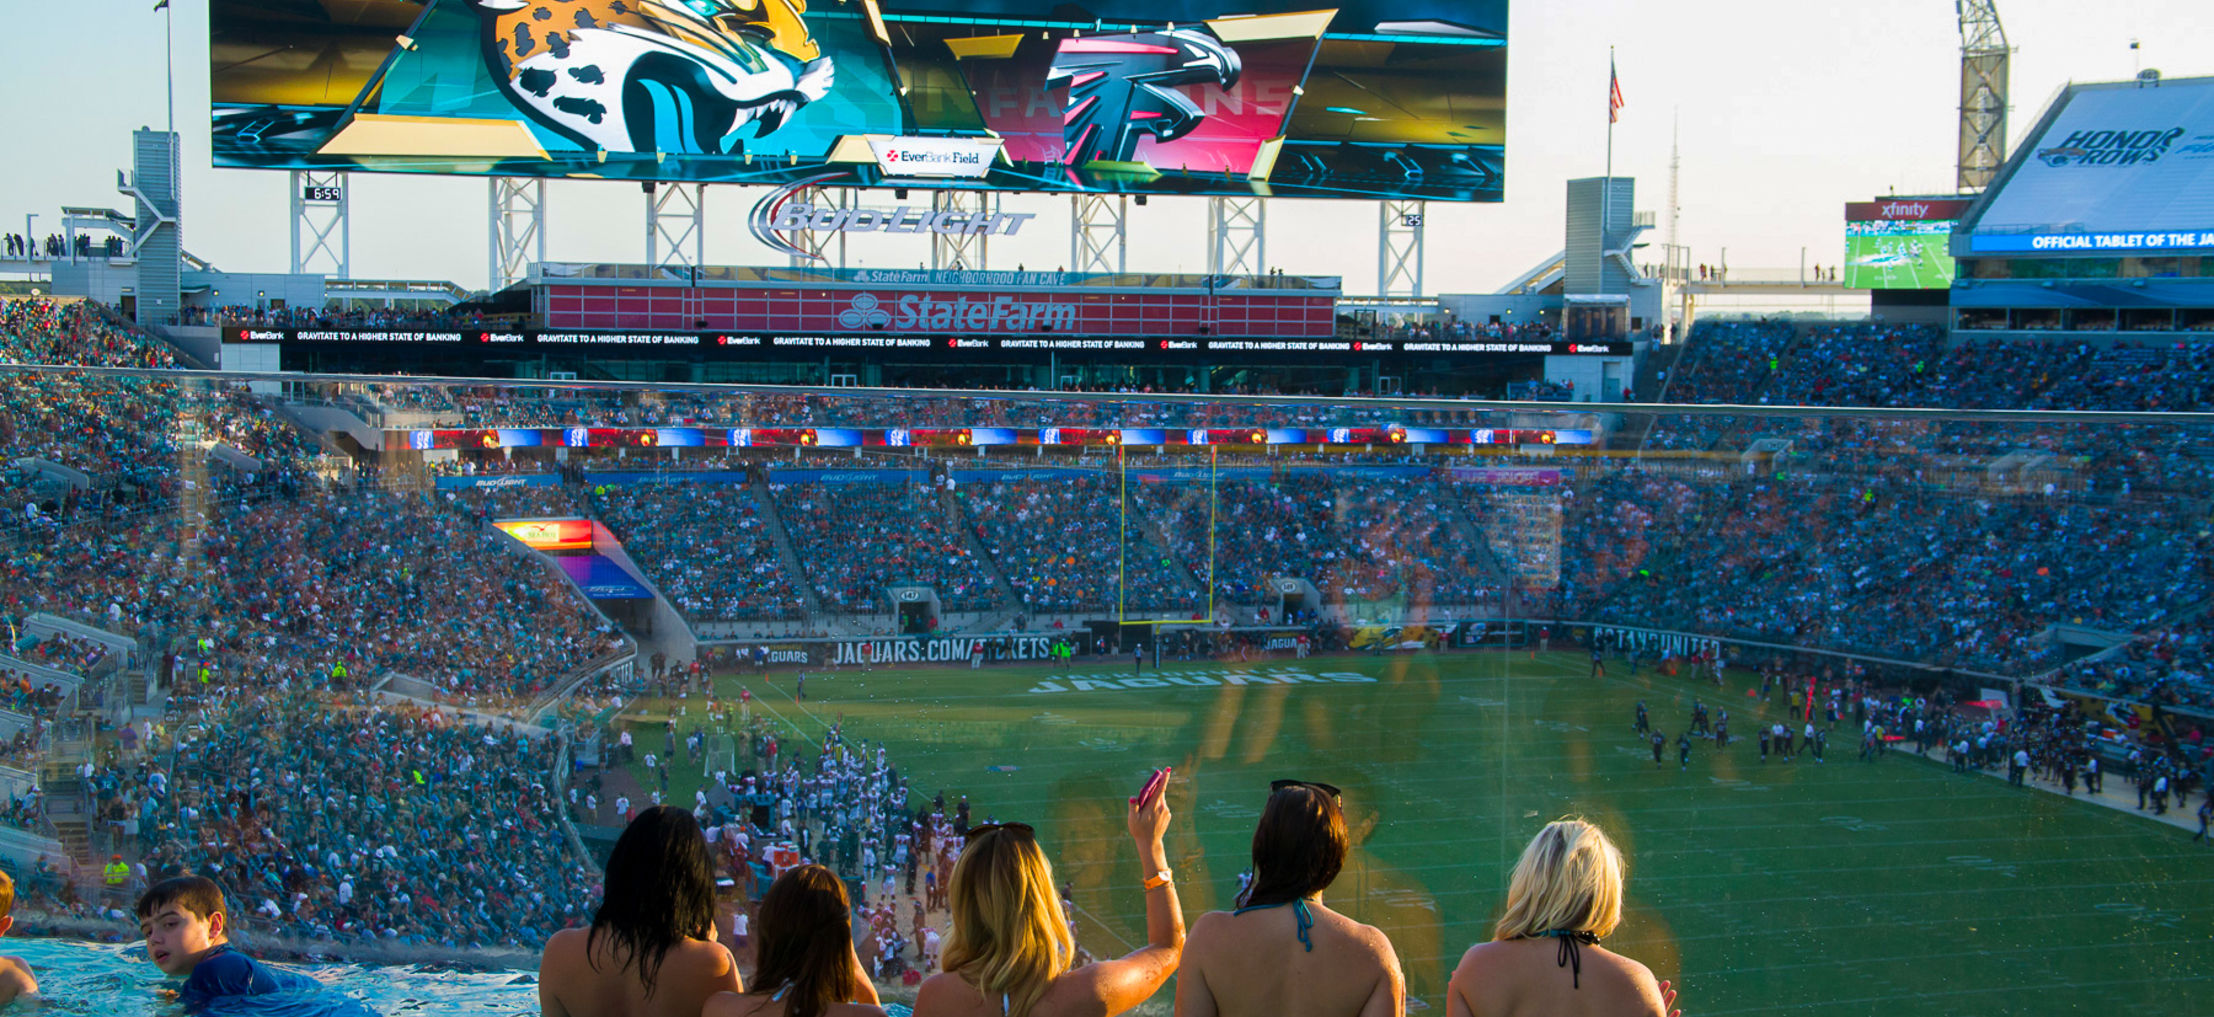 Private areas are not to be accessed. Jacksonville's Fantasy Football Stadium | WhereTraveler